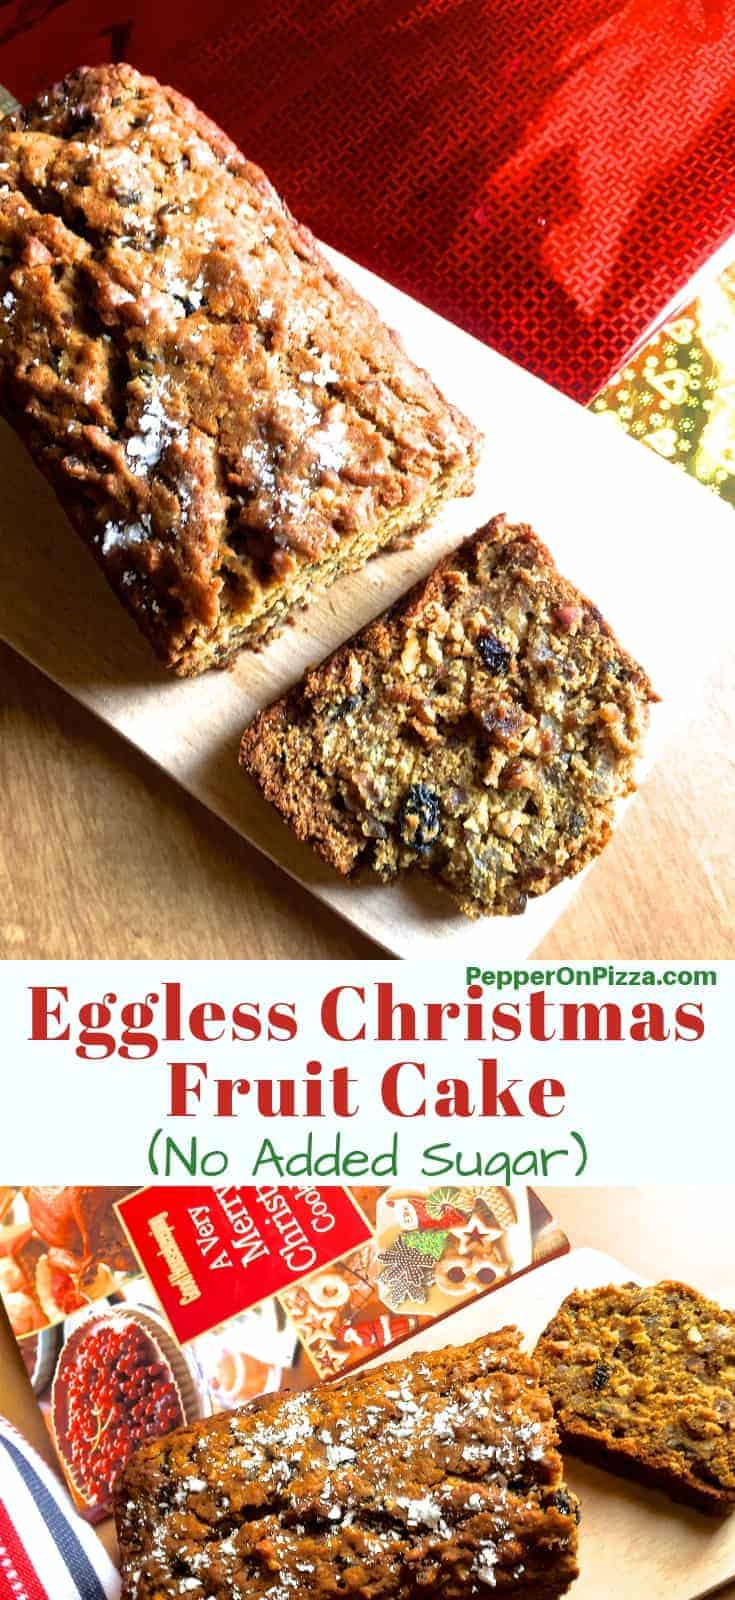 Eggless Christmas cake with the cake and a slice of it on a wooden board and with another image below of the cake on a purple background